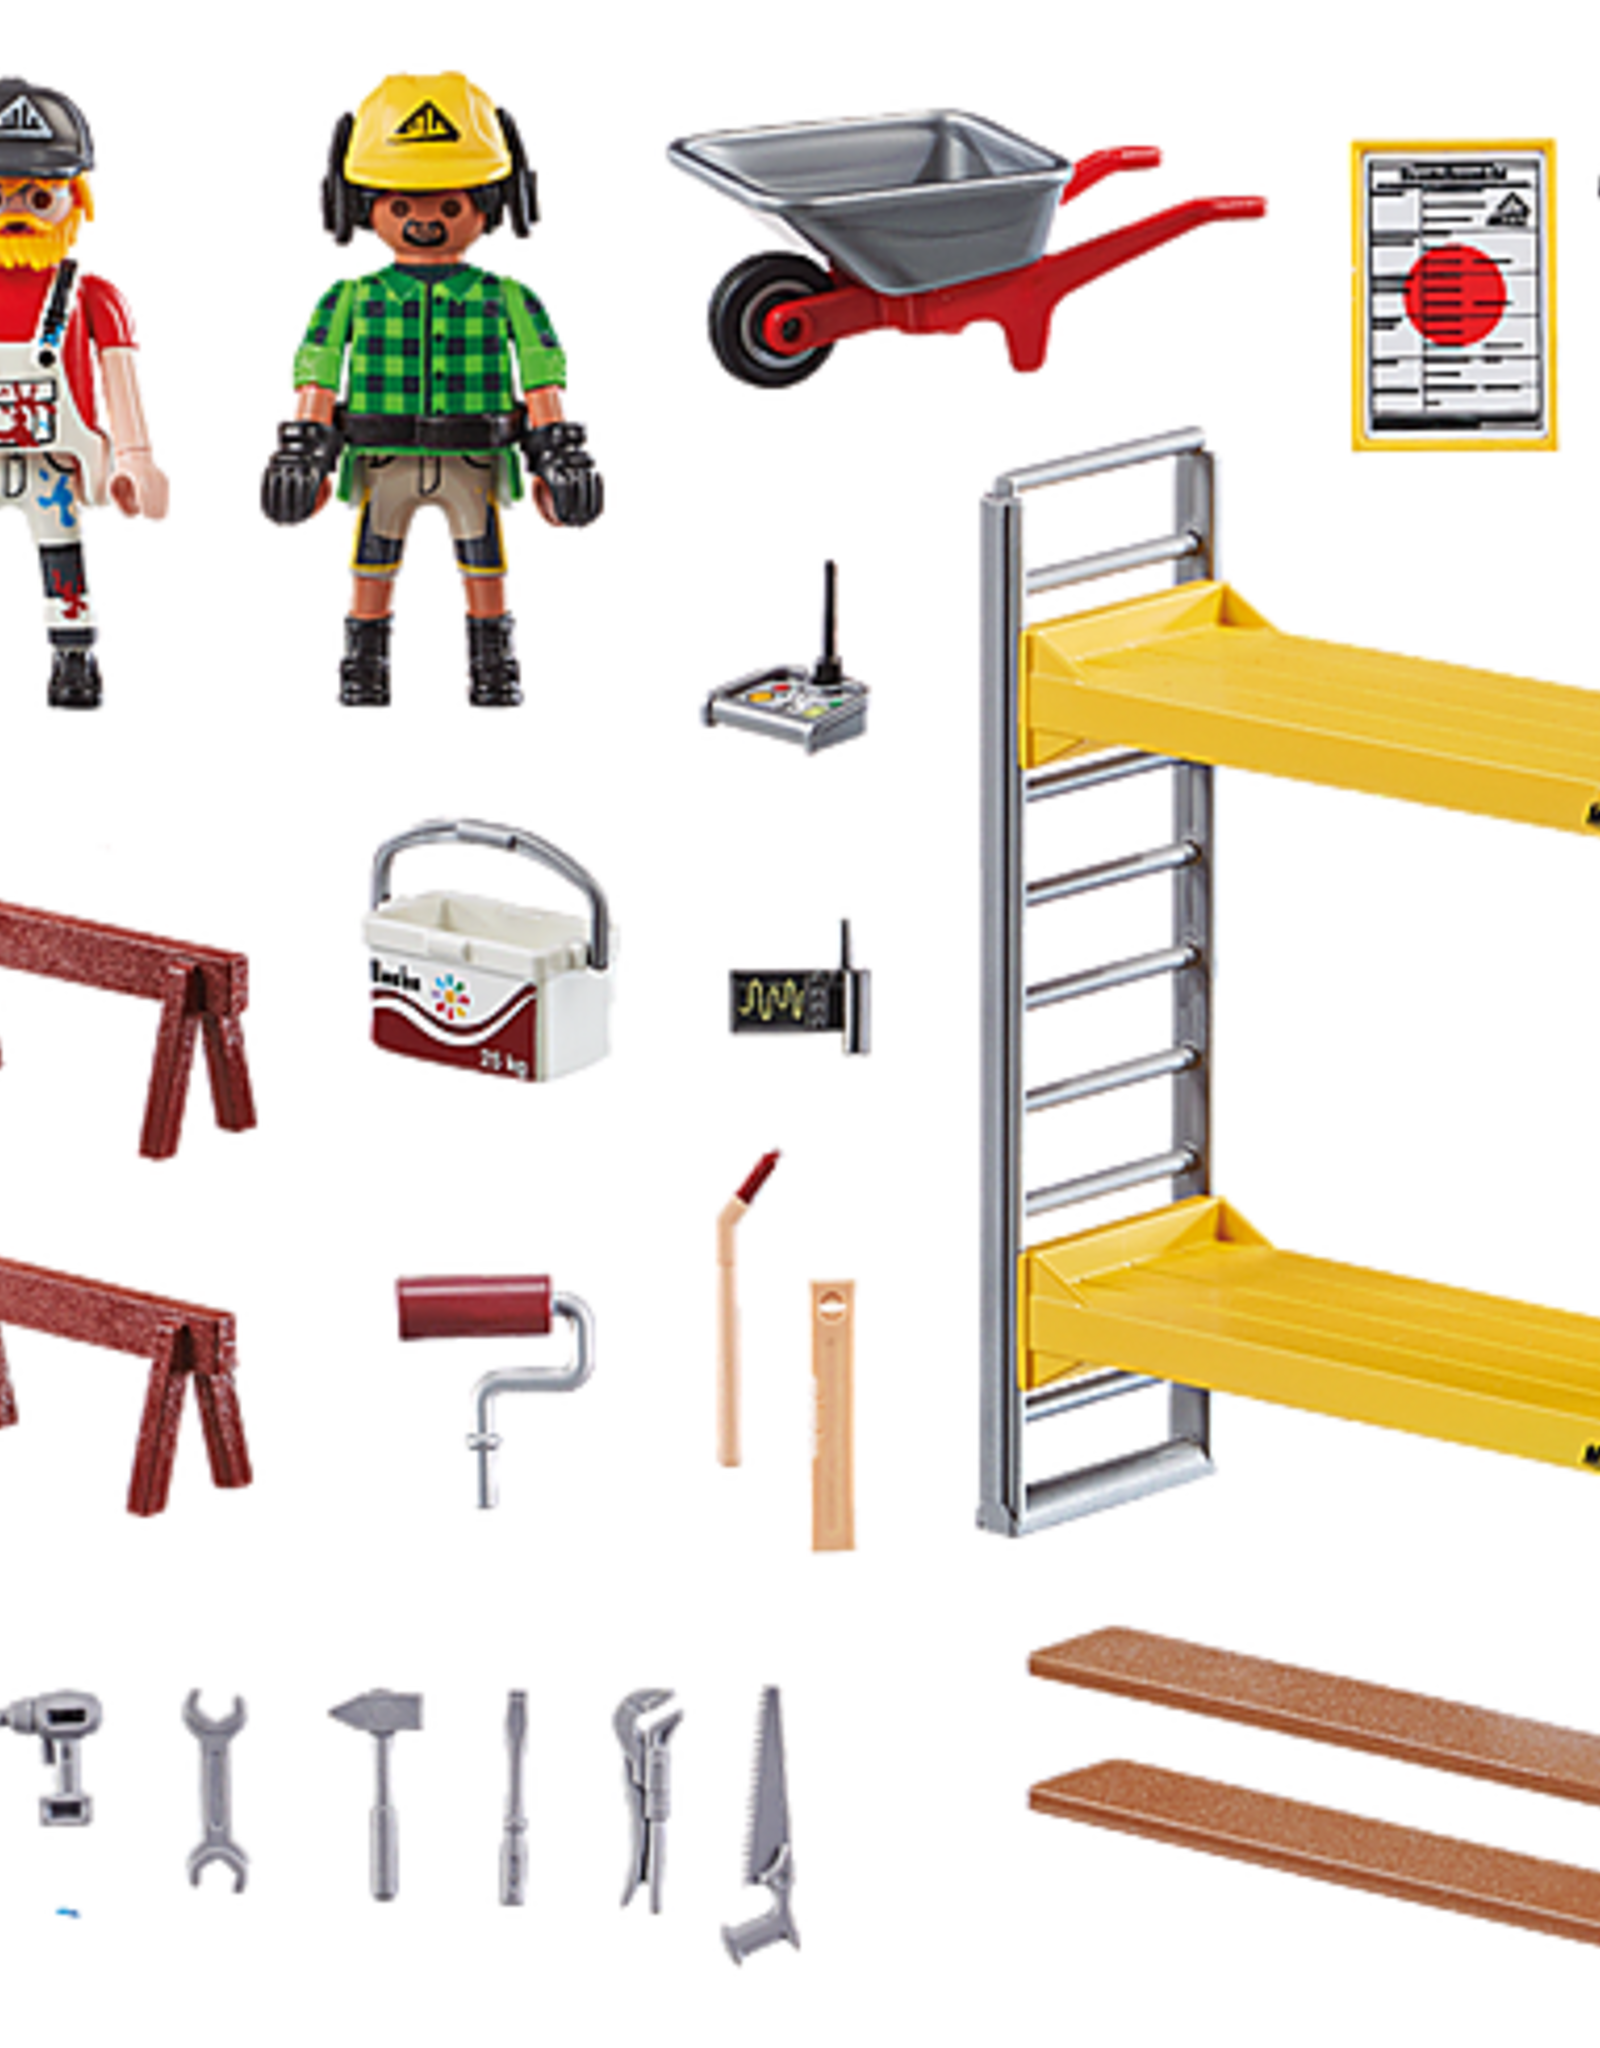 Playmobil PM Scaffolding with Workers